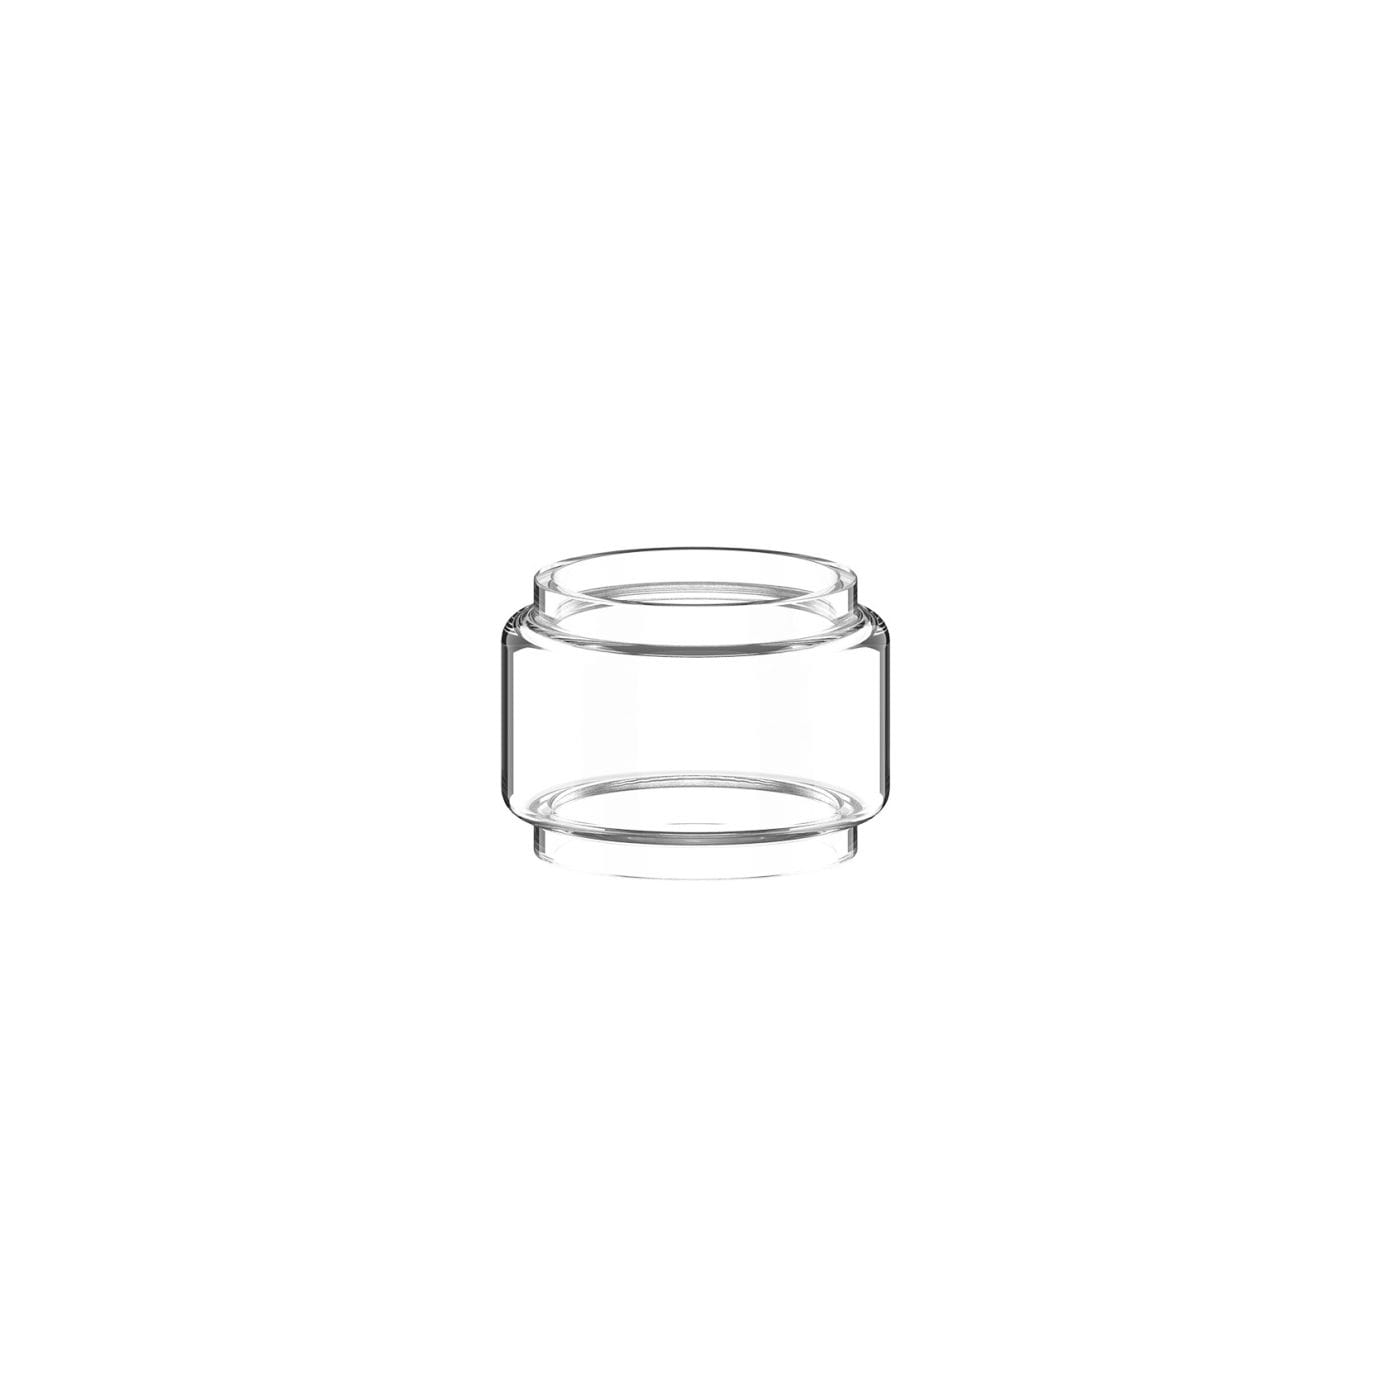 Vaporesso NRG-S and SKRR Tank Replacement Glass Tube - 1 Pack